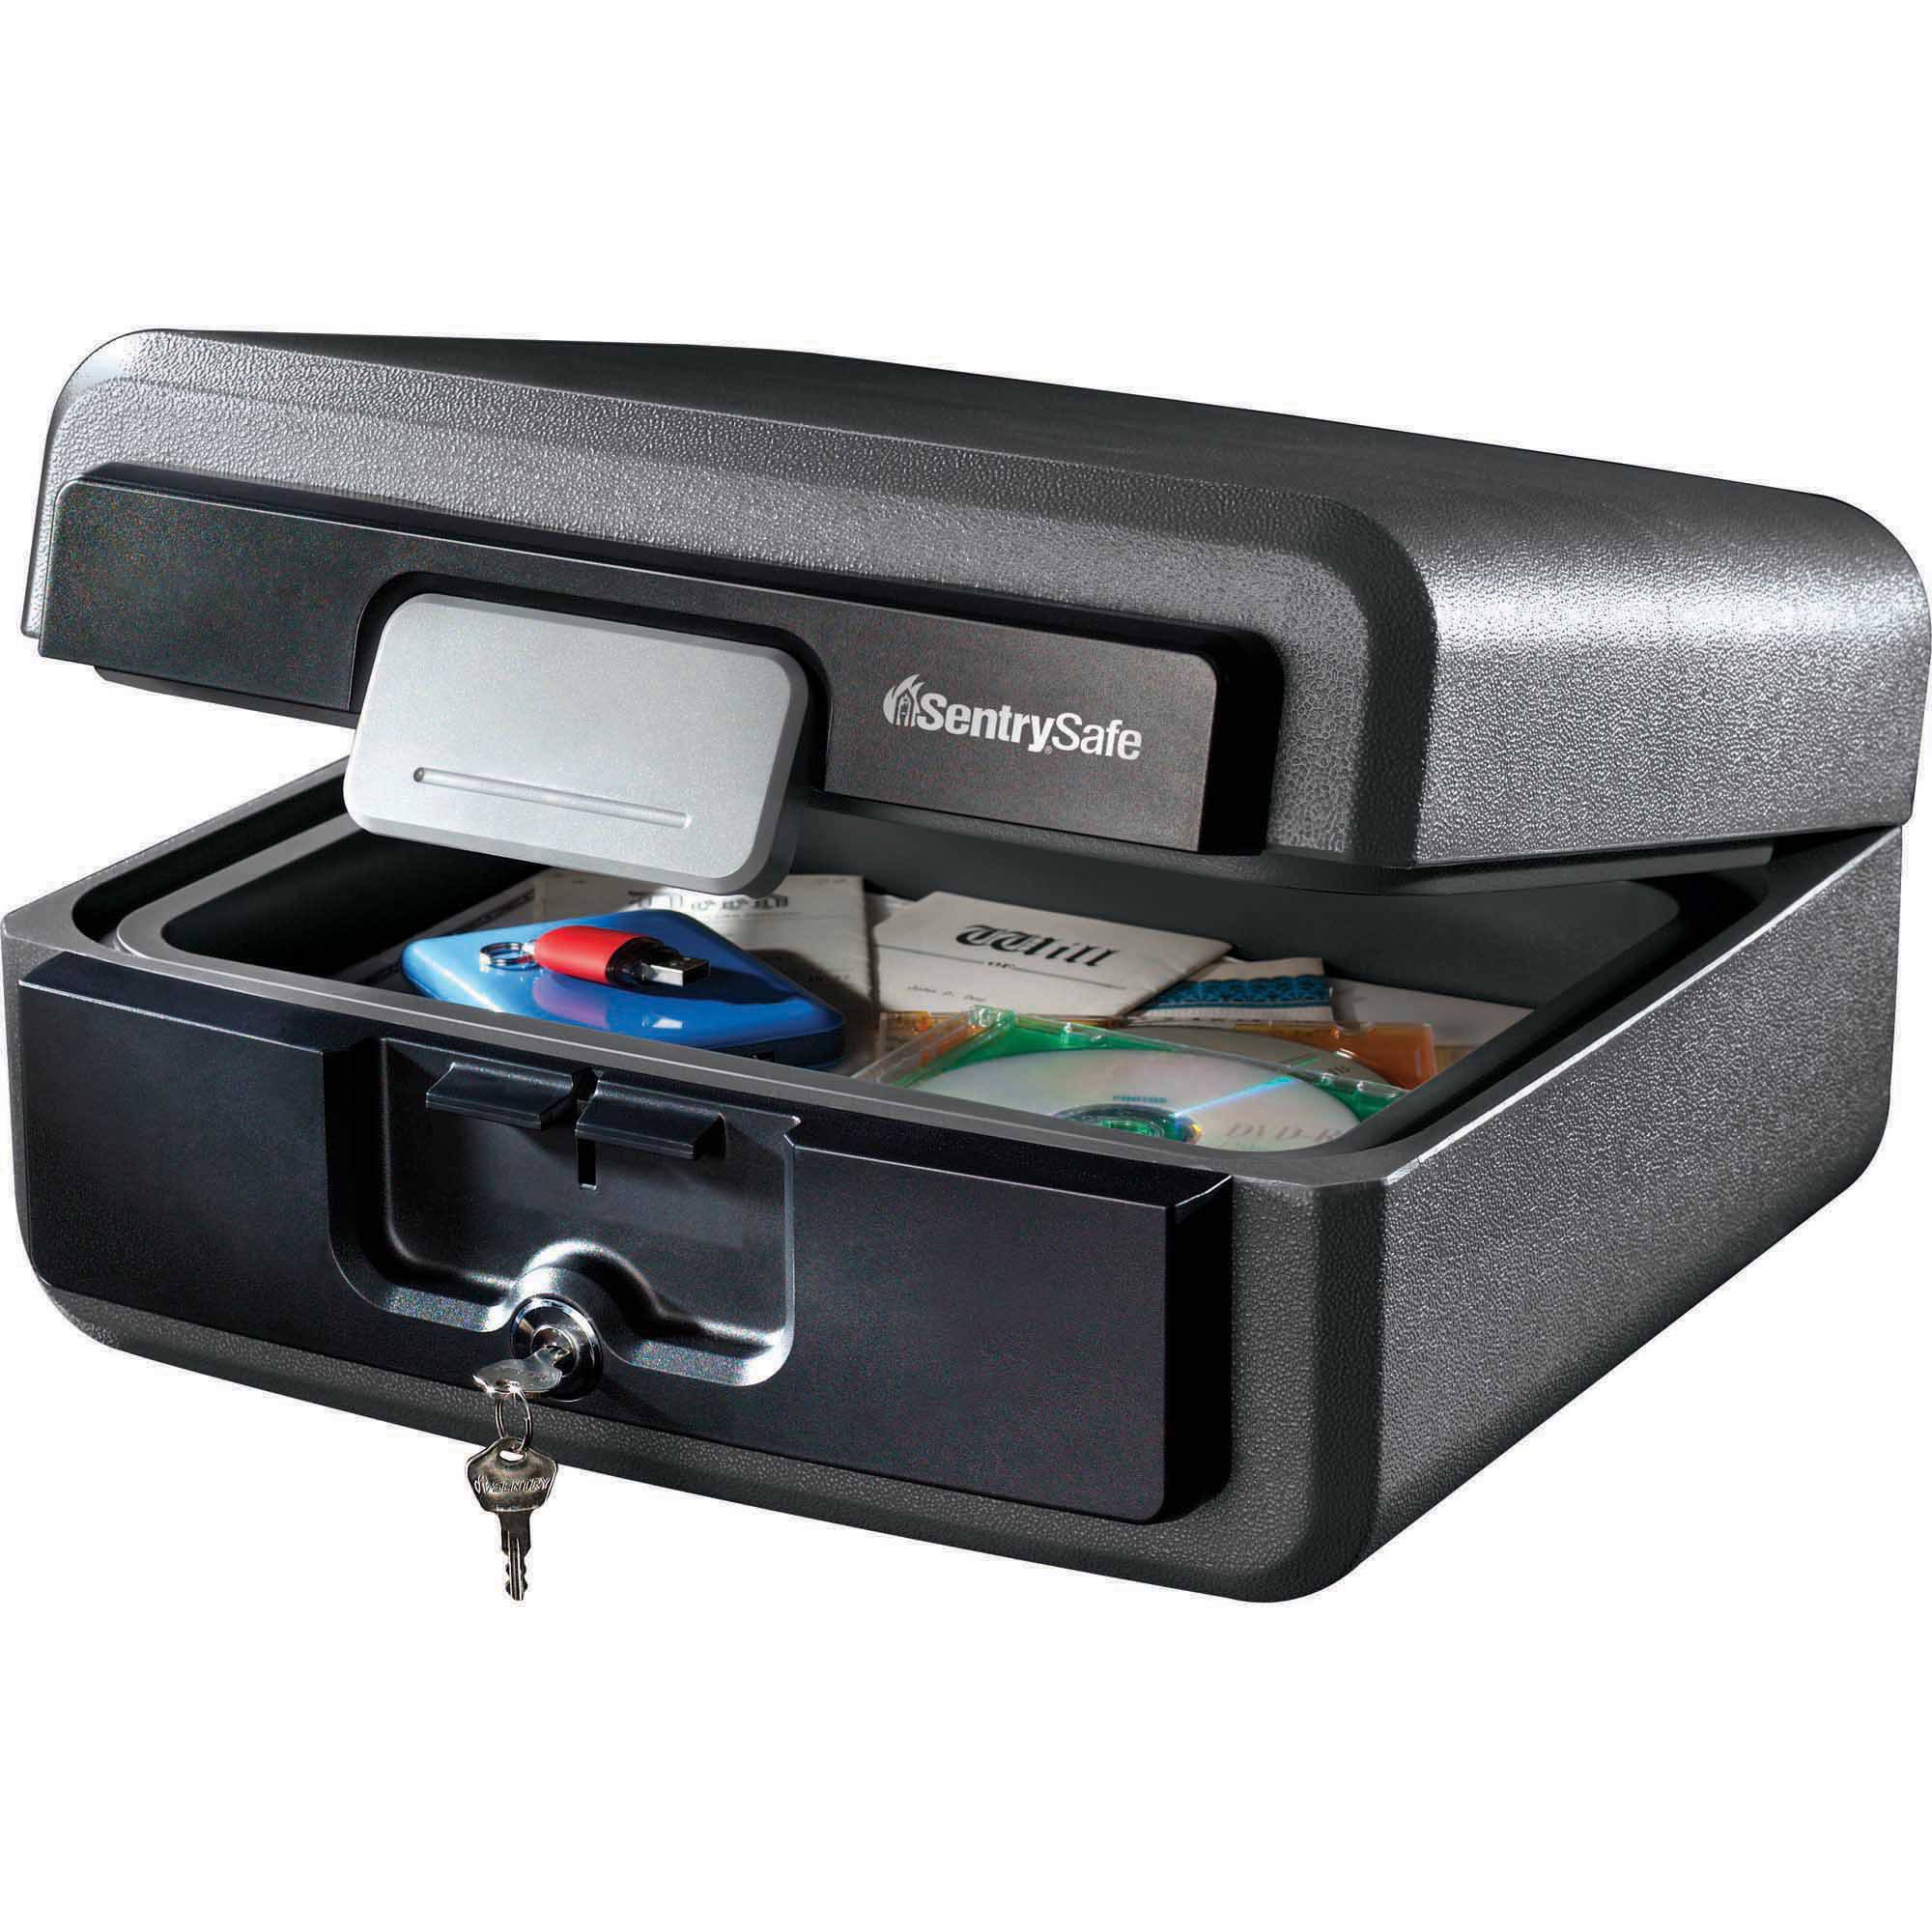 SentrySafe HD2100 Fireproof Box and Waterproof Box with Key Lock 0.37 cu ft